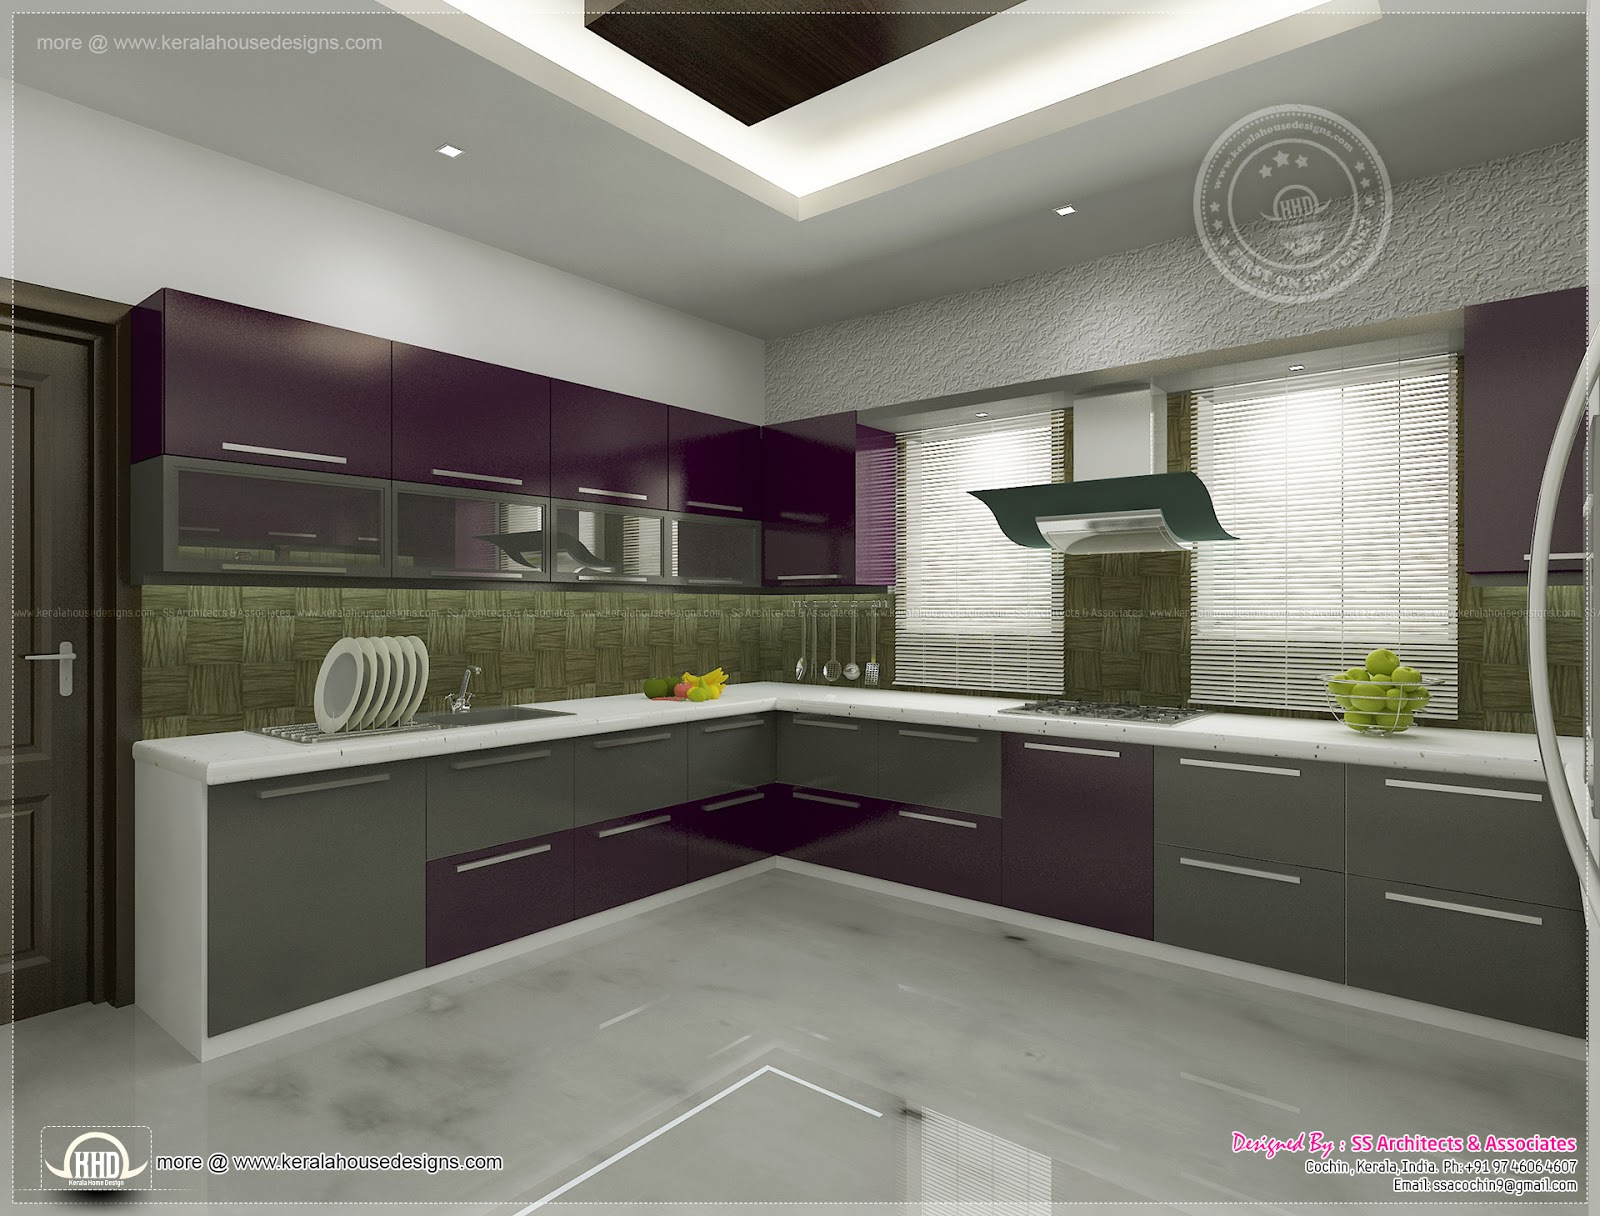 Kitchen interior views by ss architects cochin kerala for Home indoor design